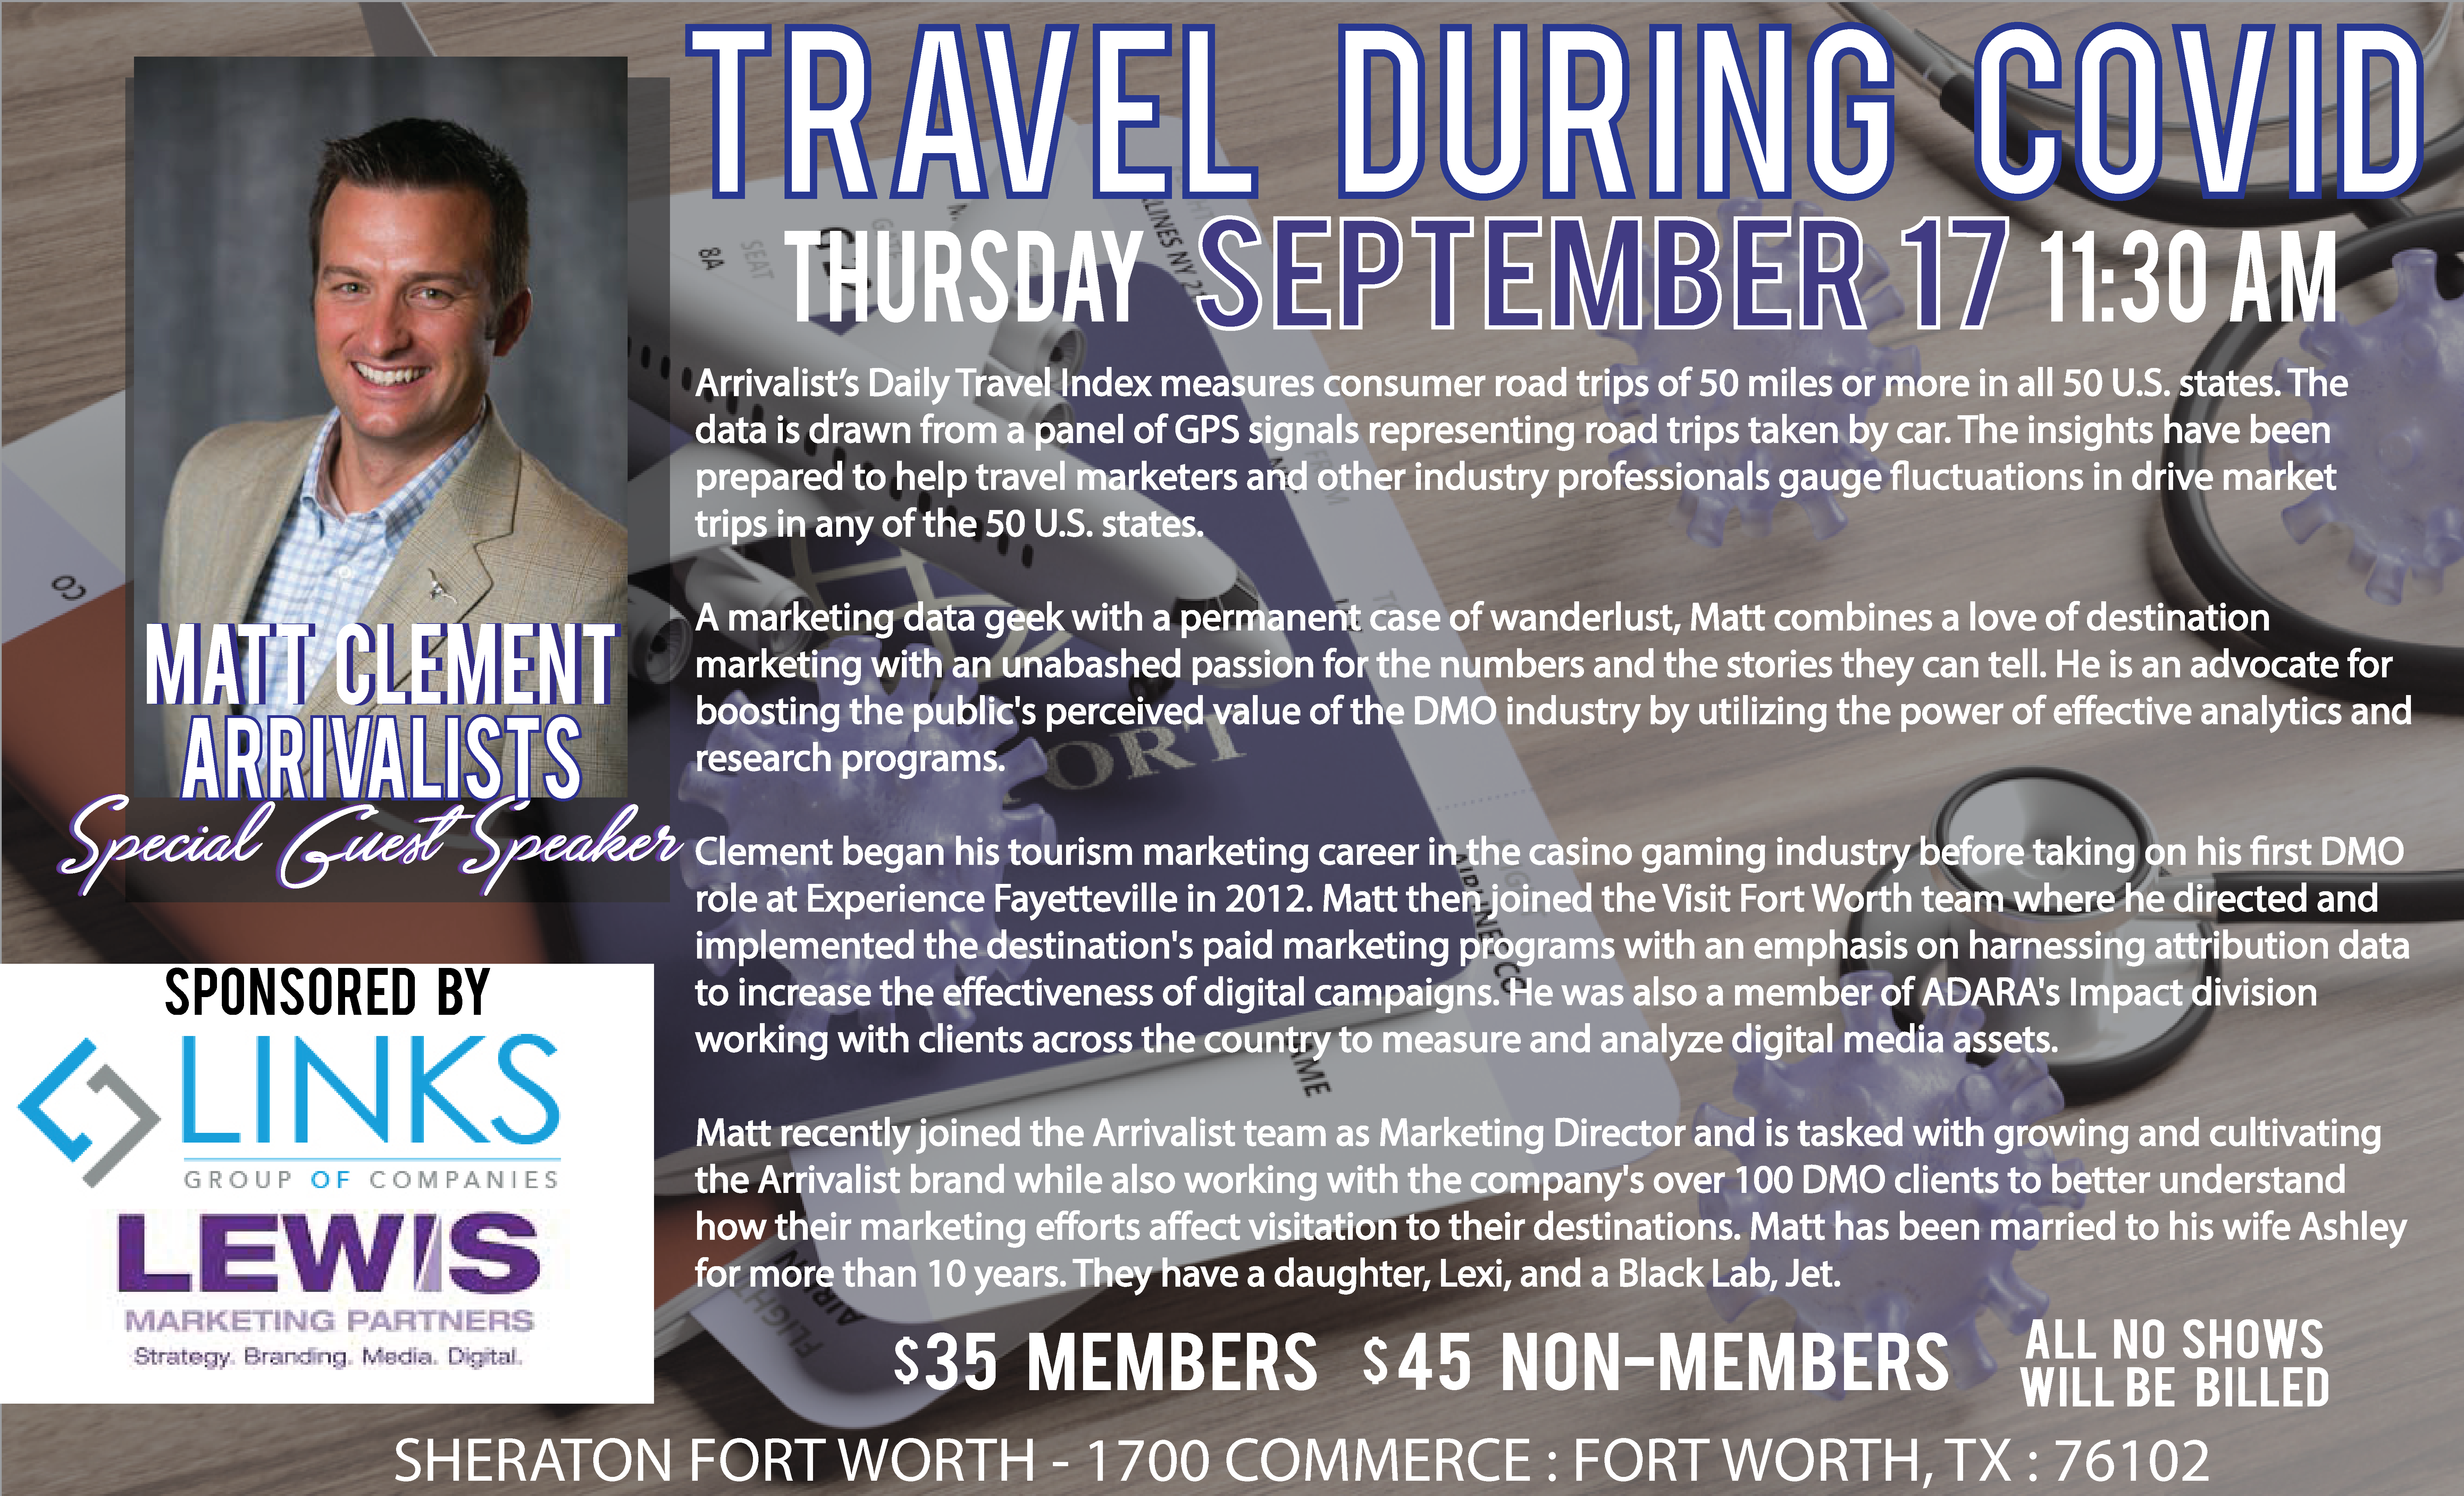 September Meeting & Luncheon Travel During COVID-19 with ARES